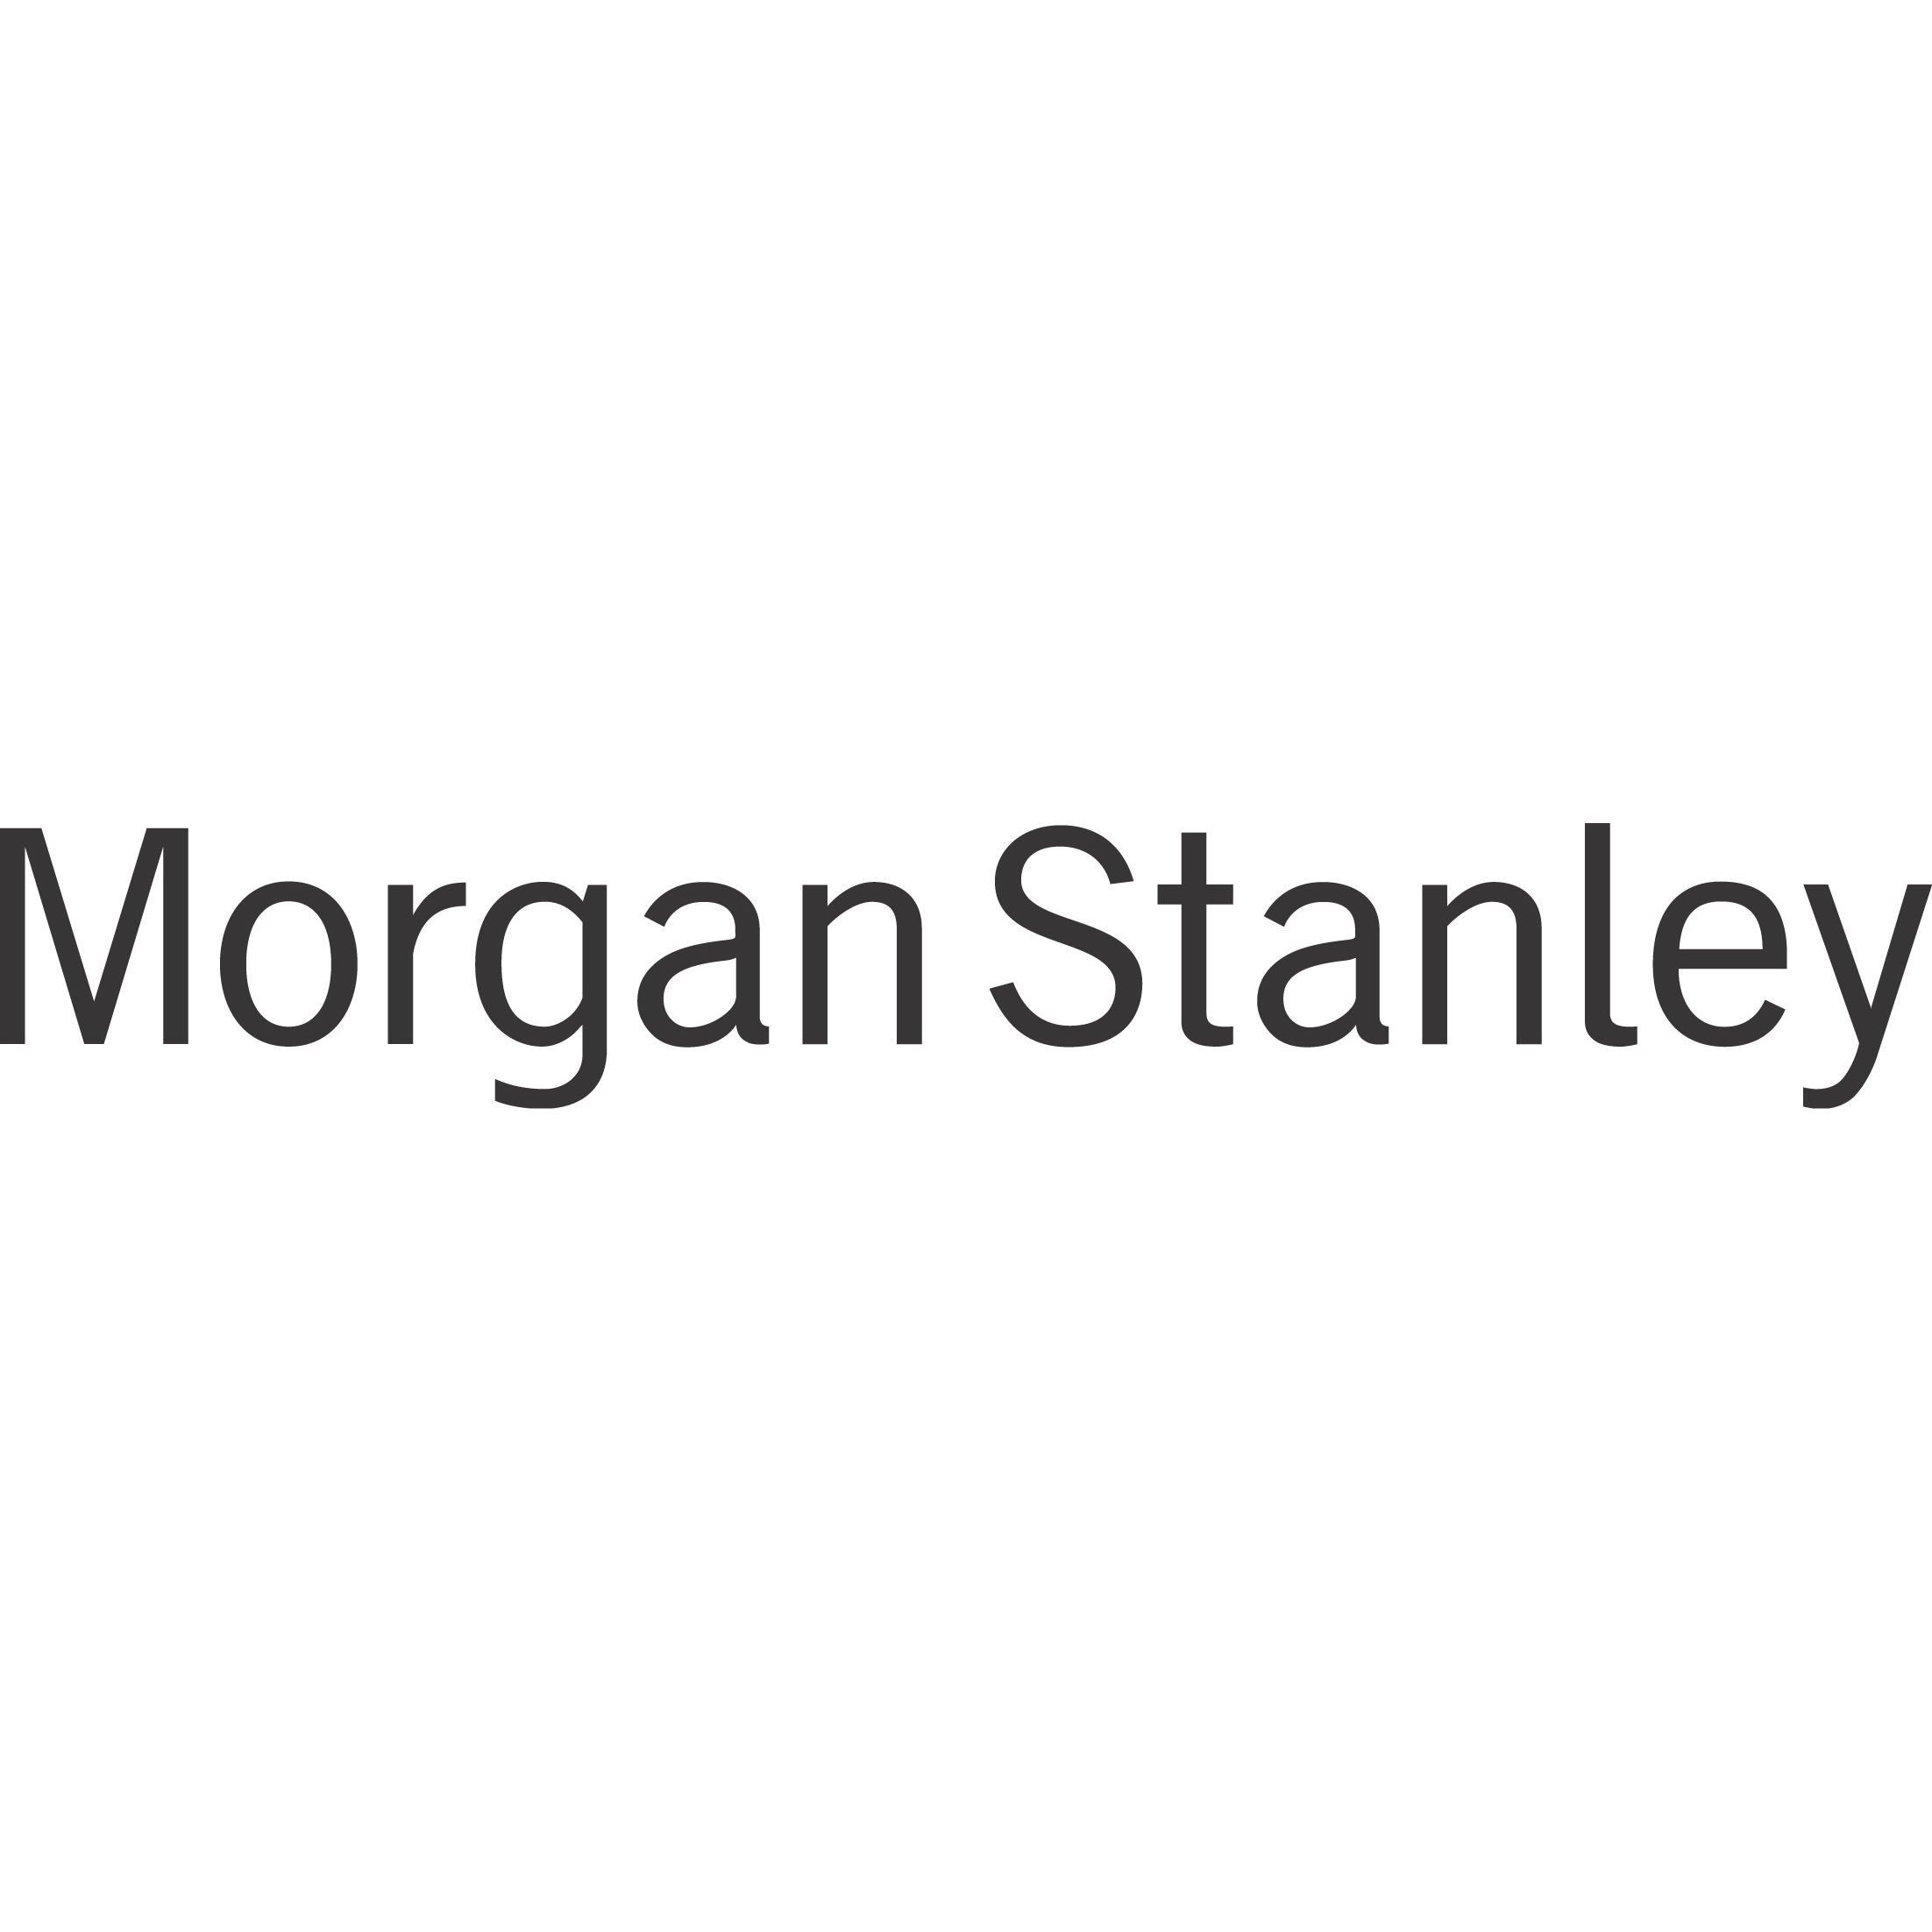 Sharon H Dykhouse - Morgan Stanley | Financial Advisor in Grand Rapids,Michigan